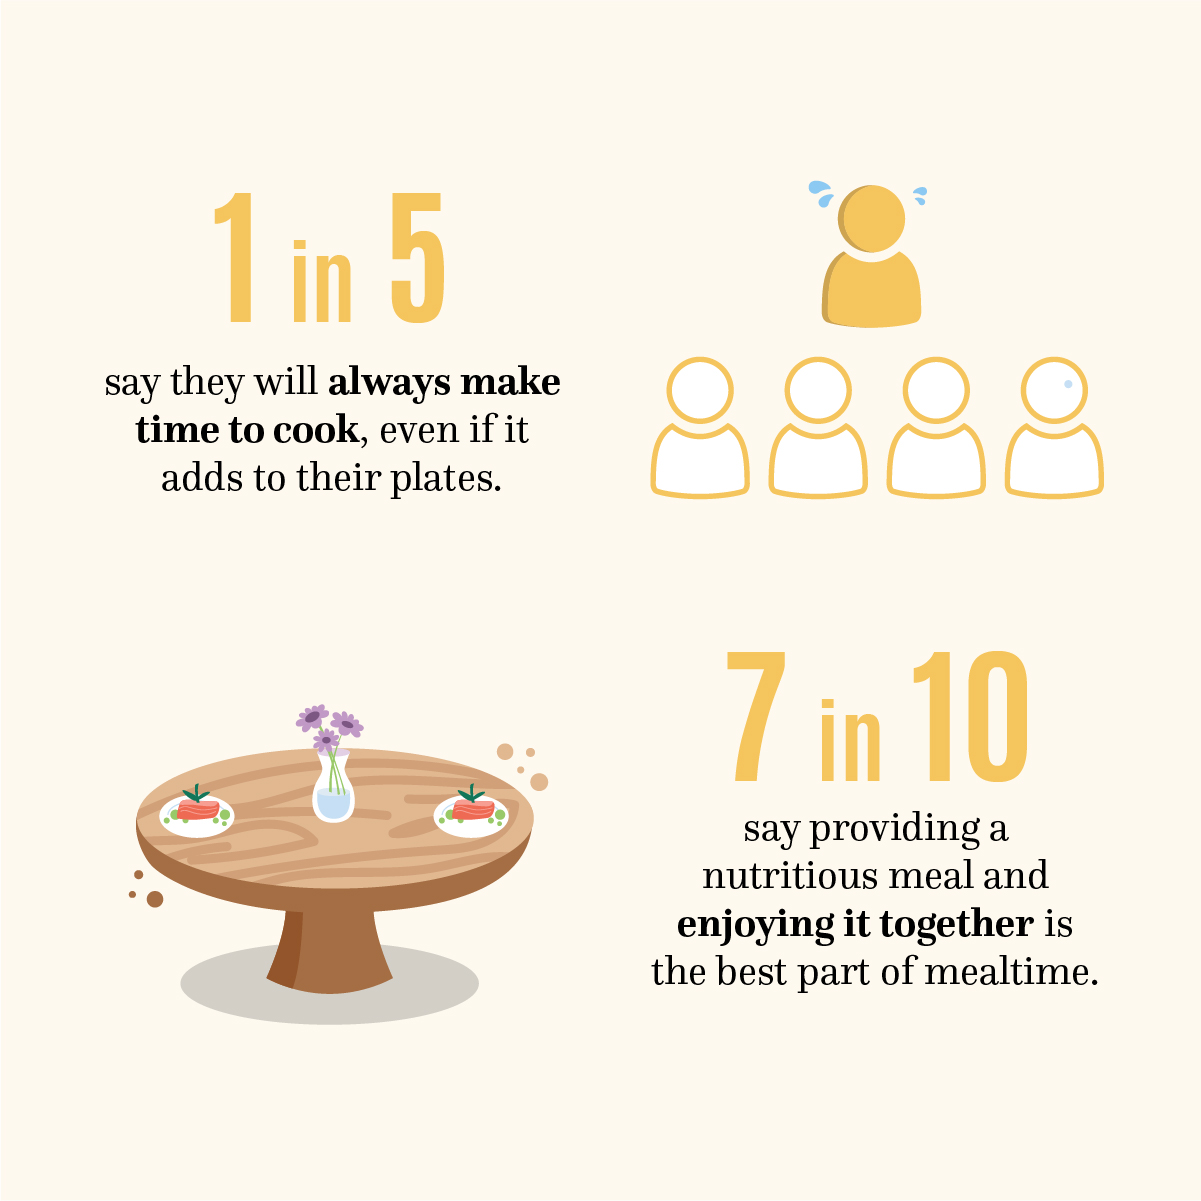 1 in 5 say they will always make time to cook, even if it adds to their plates. 7 in 10 say providing a nutritious meal and enjoying ti together is the best part of mealtime. Help is here.